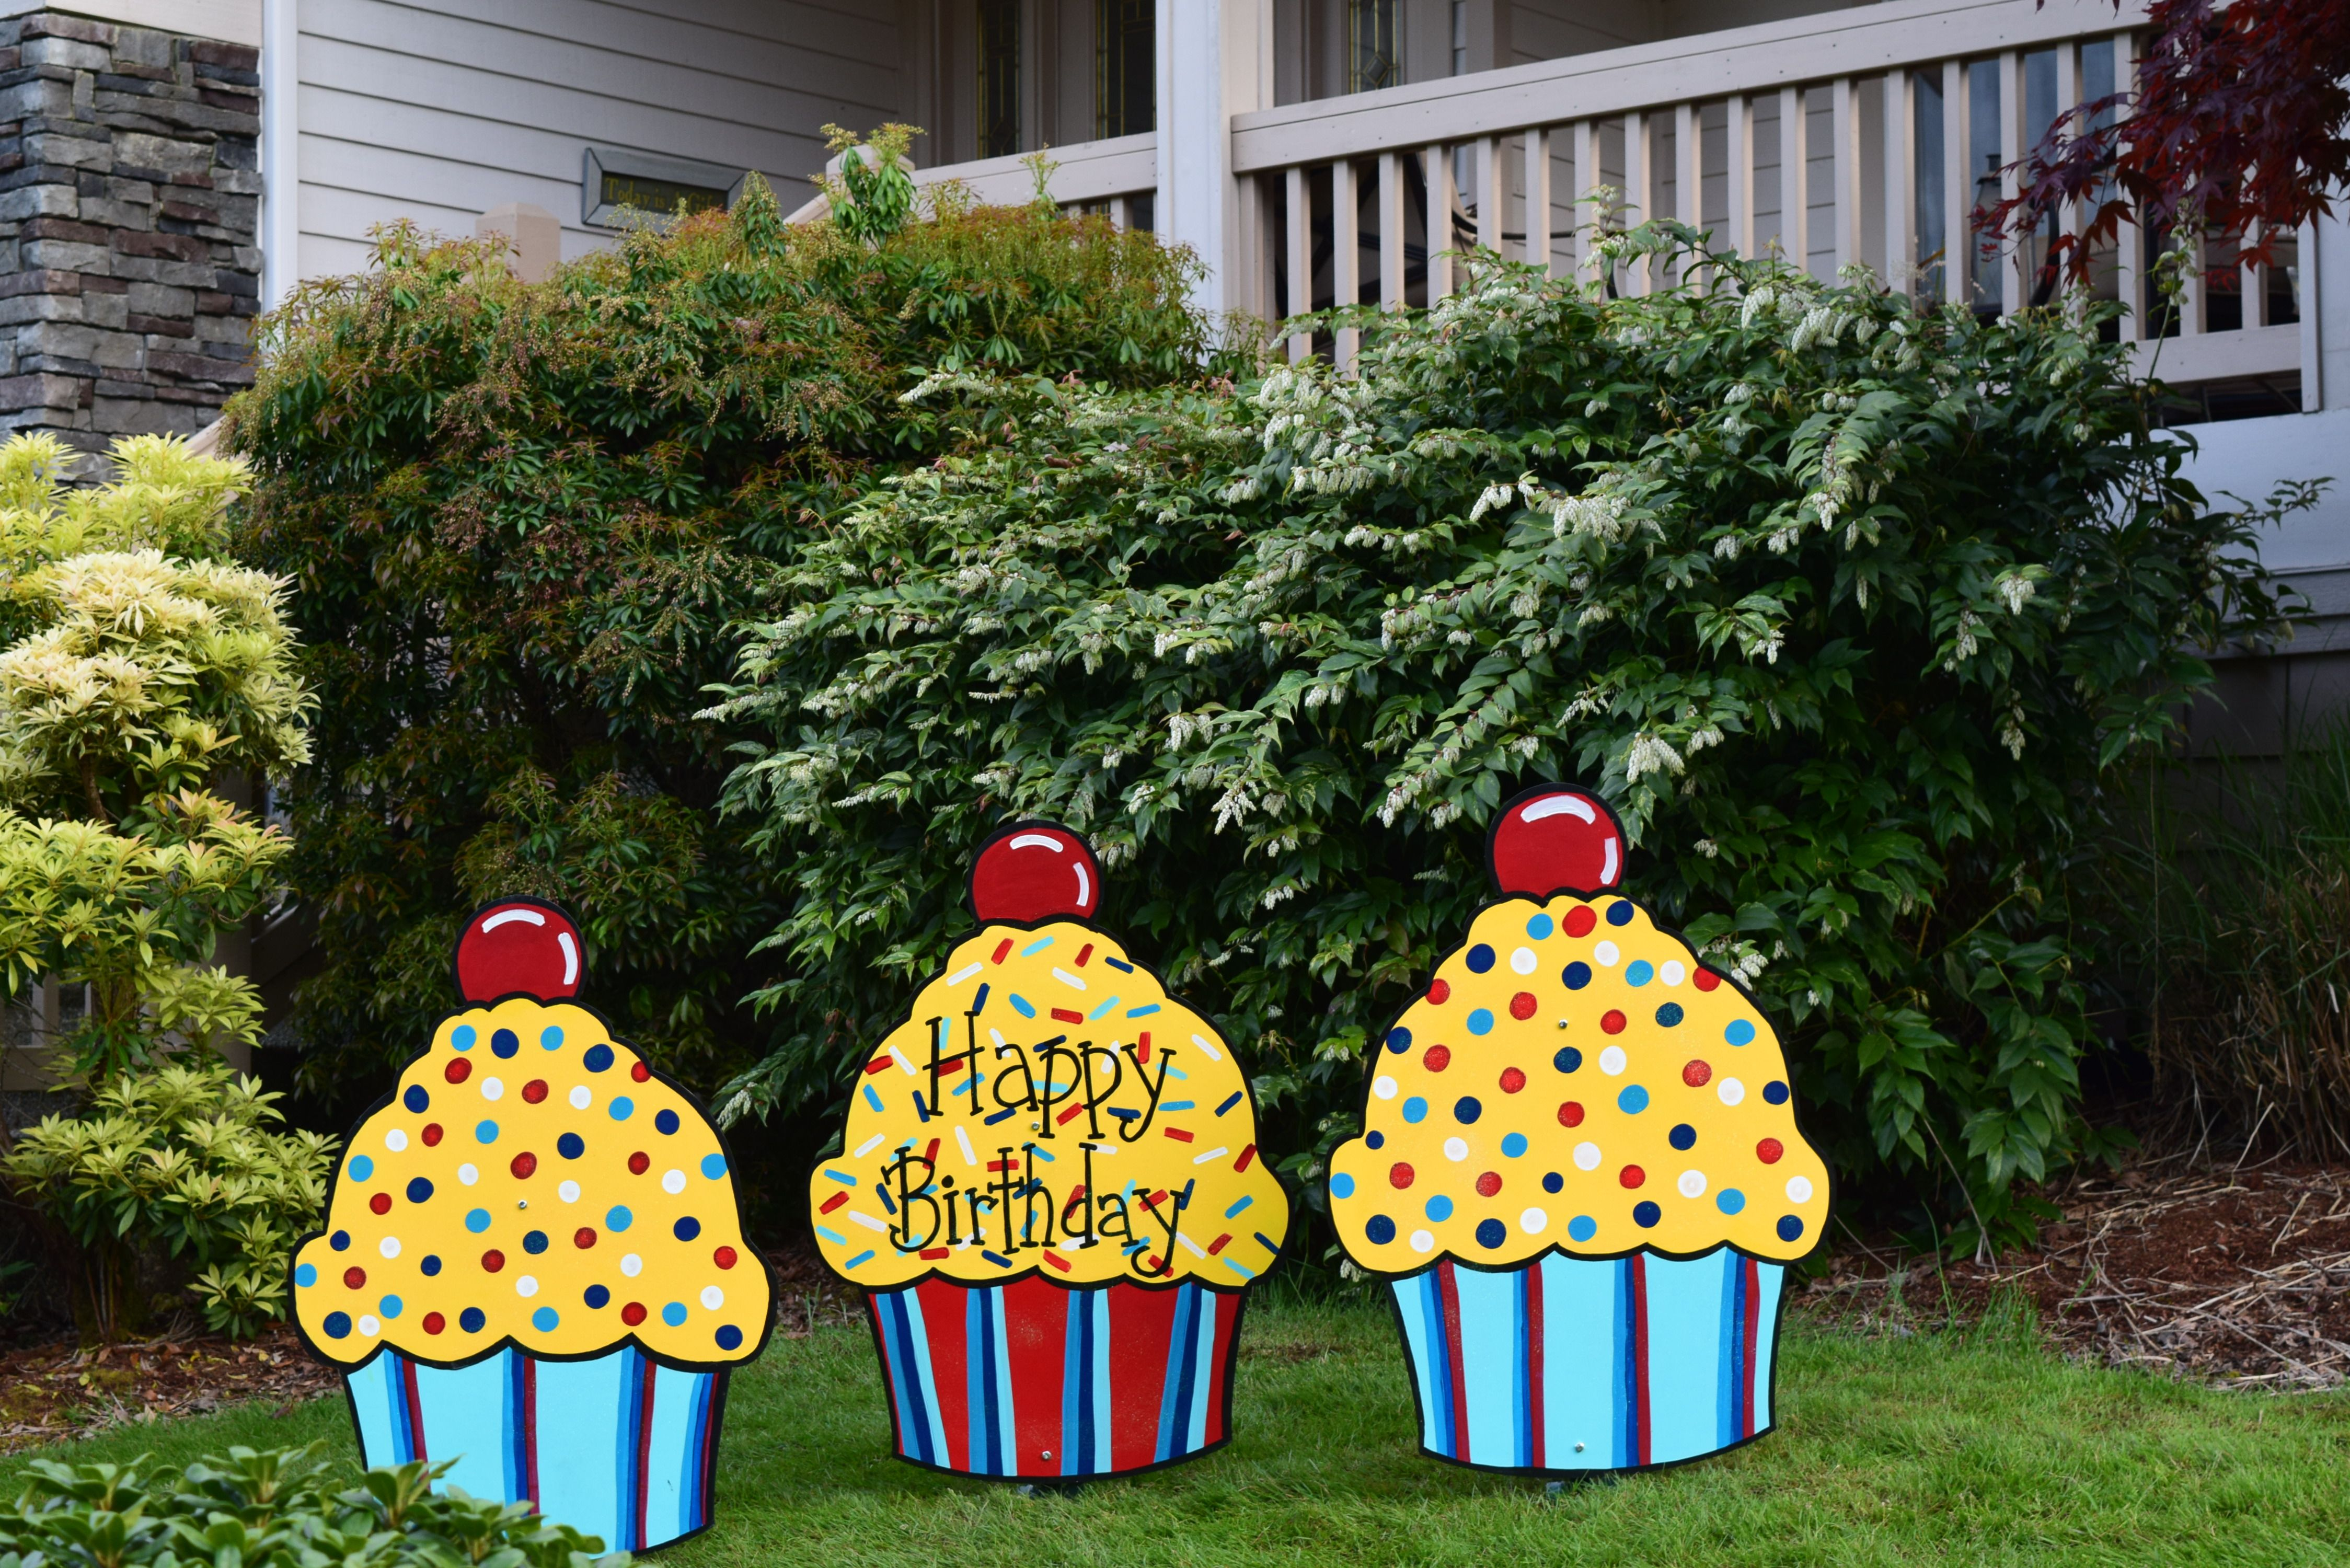 Rent some cute Happy Birthday Cupcake yard signs for your